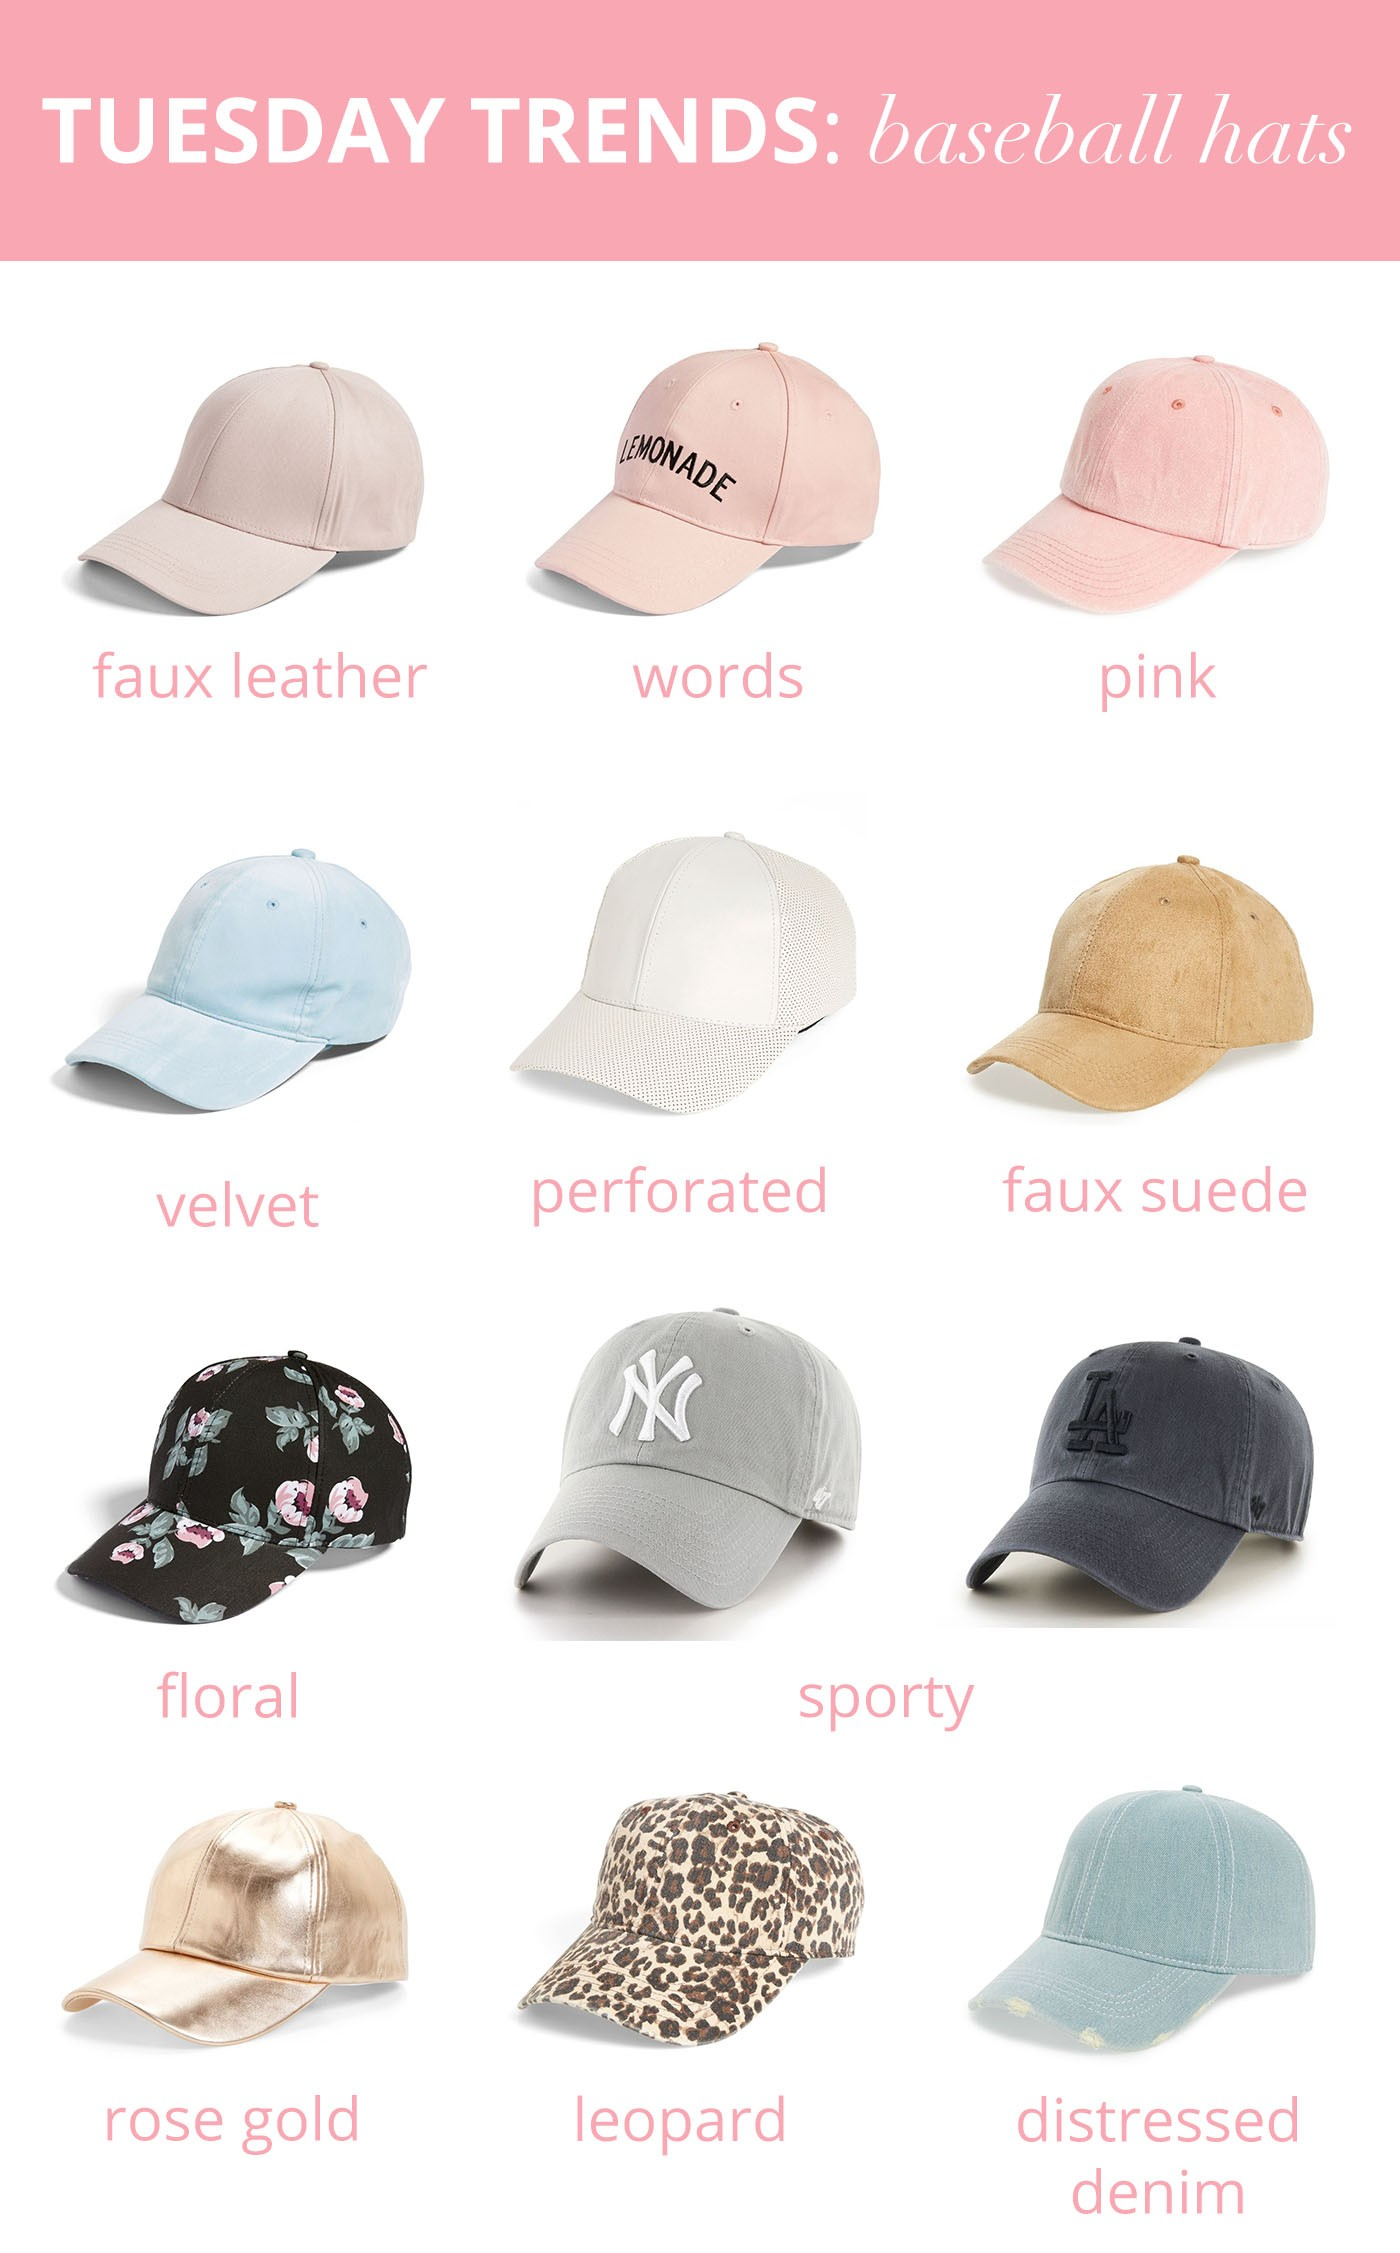 ... the leopard hat would look really cute with a striped T-shirt or olive  green jacket and distressed jeans. What are your favorite baseball hat  styles  9672393b147